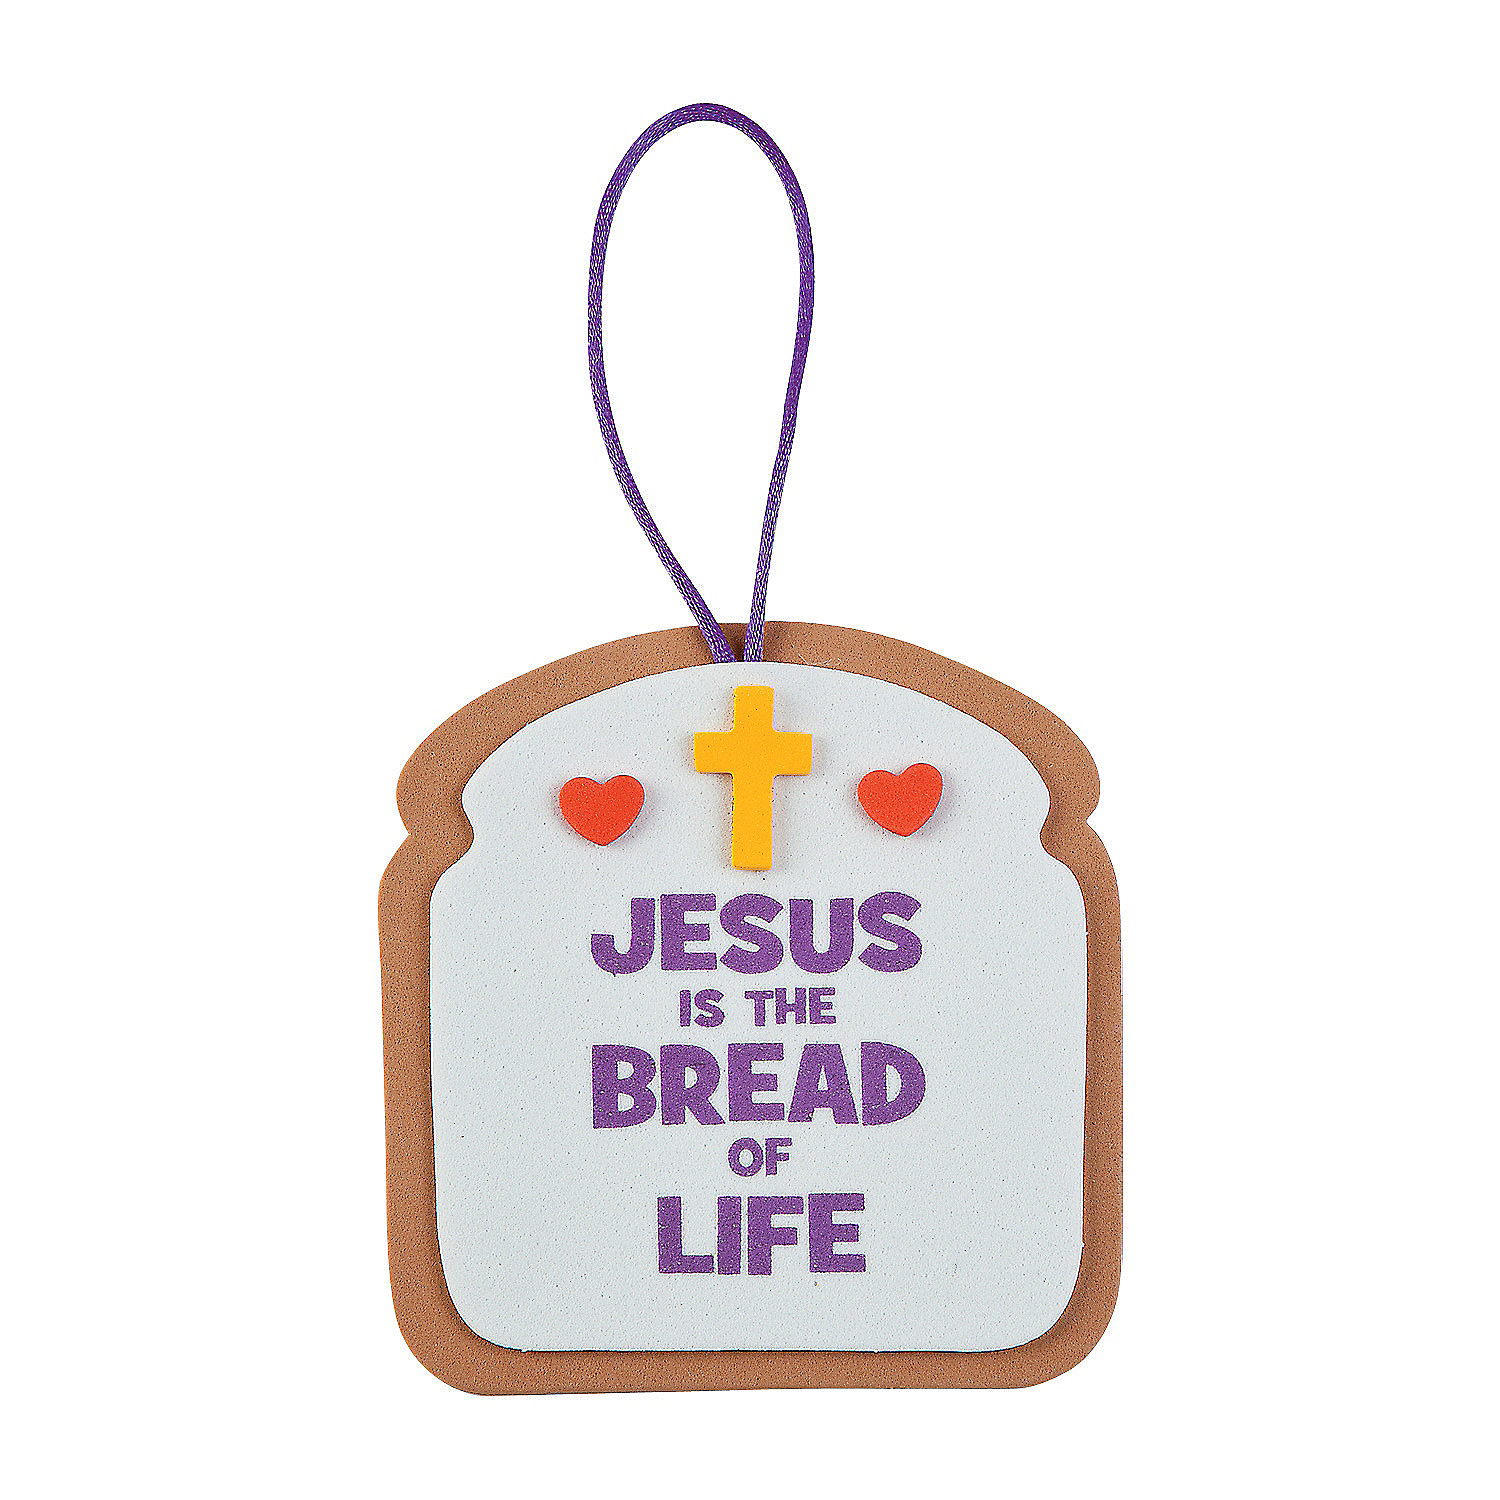 Bread Of Life Ornament Craft Kit Ornament Crafts Crafts